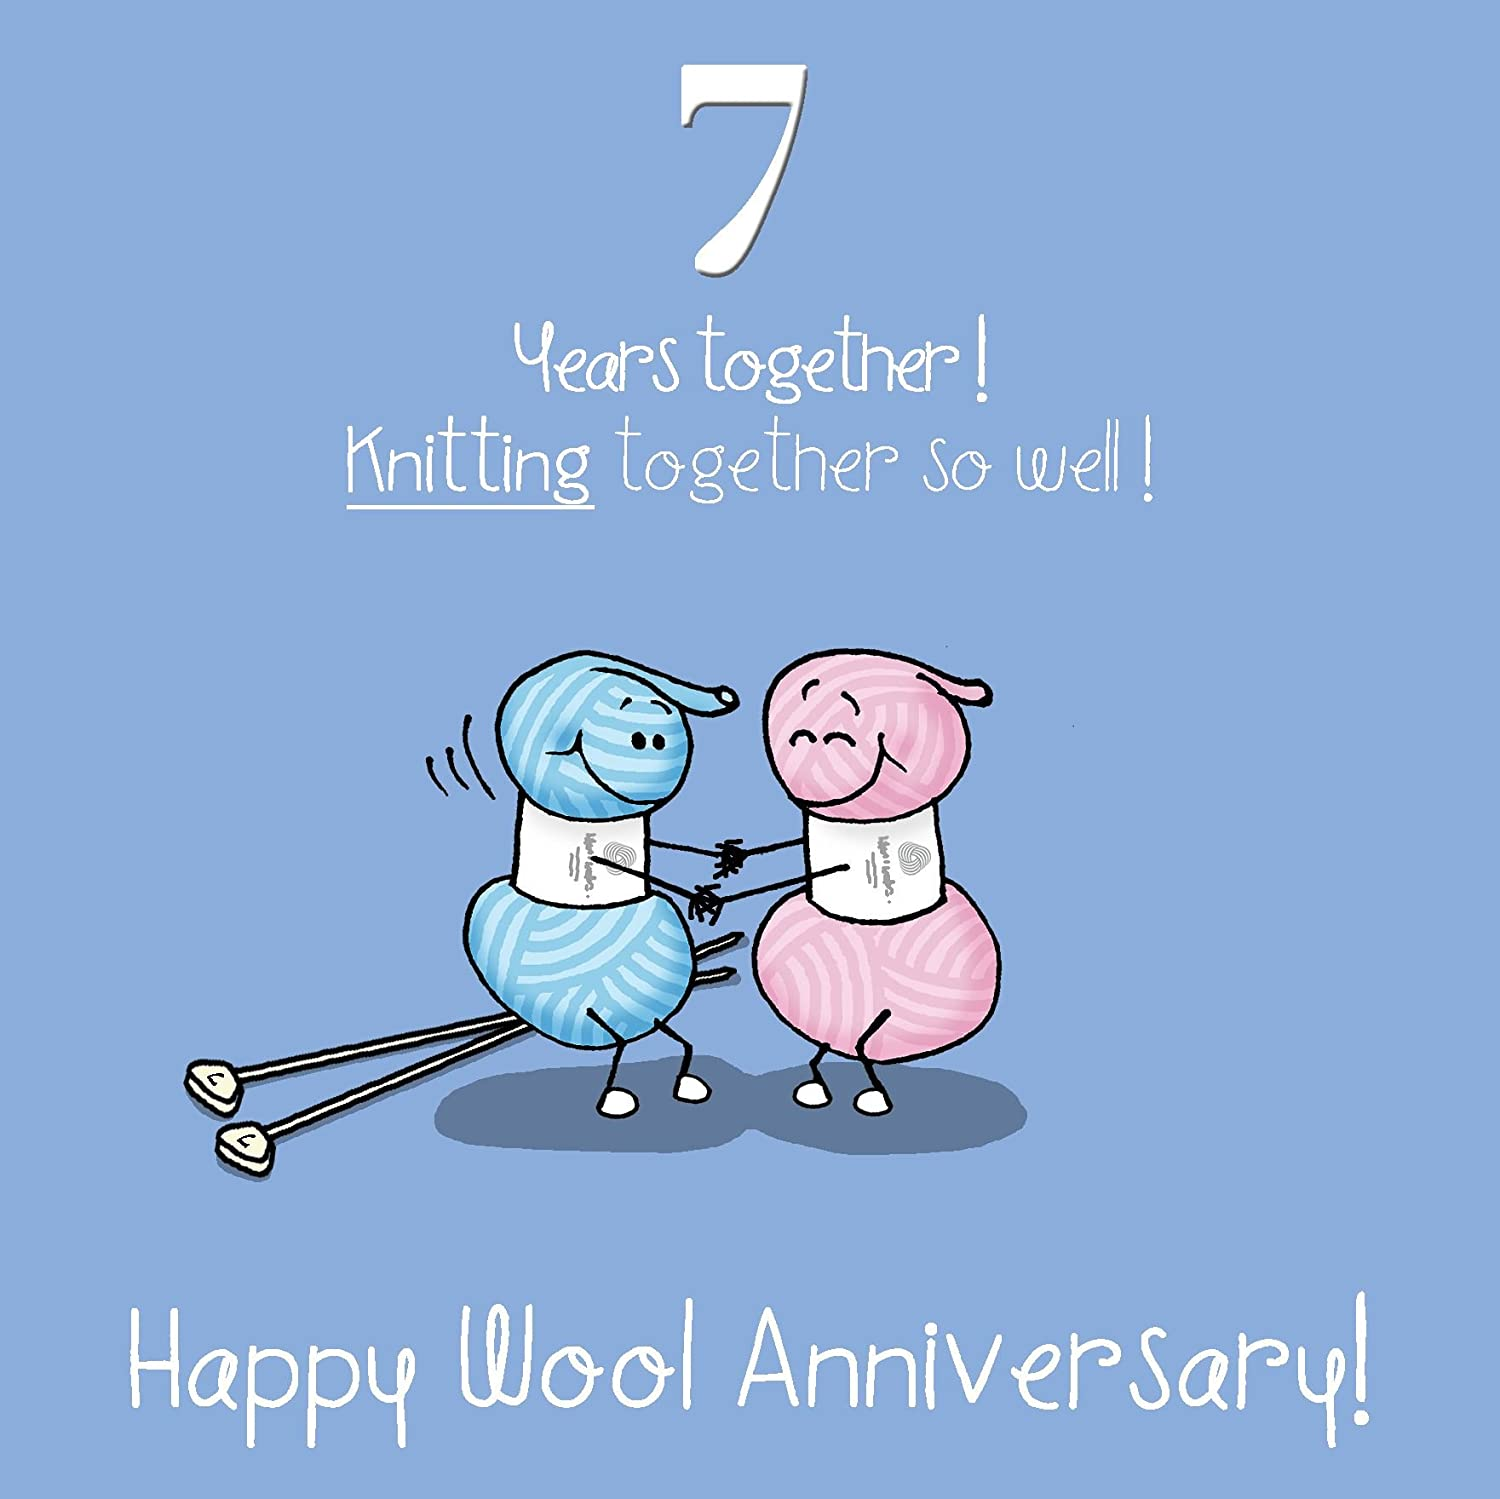 My Husband 7th Wedding Anniversary Card On Our Wool Anniversary